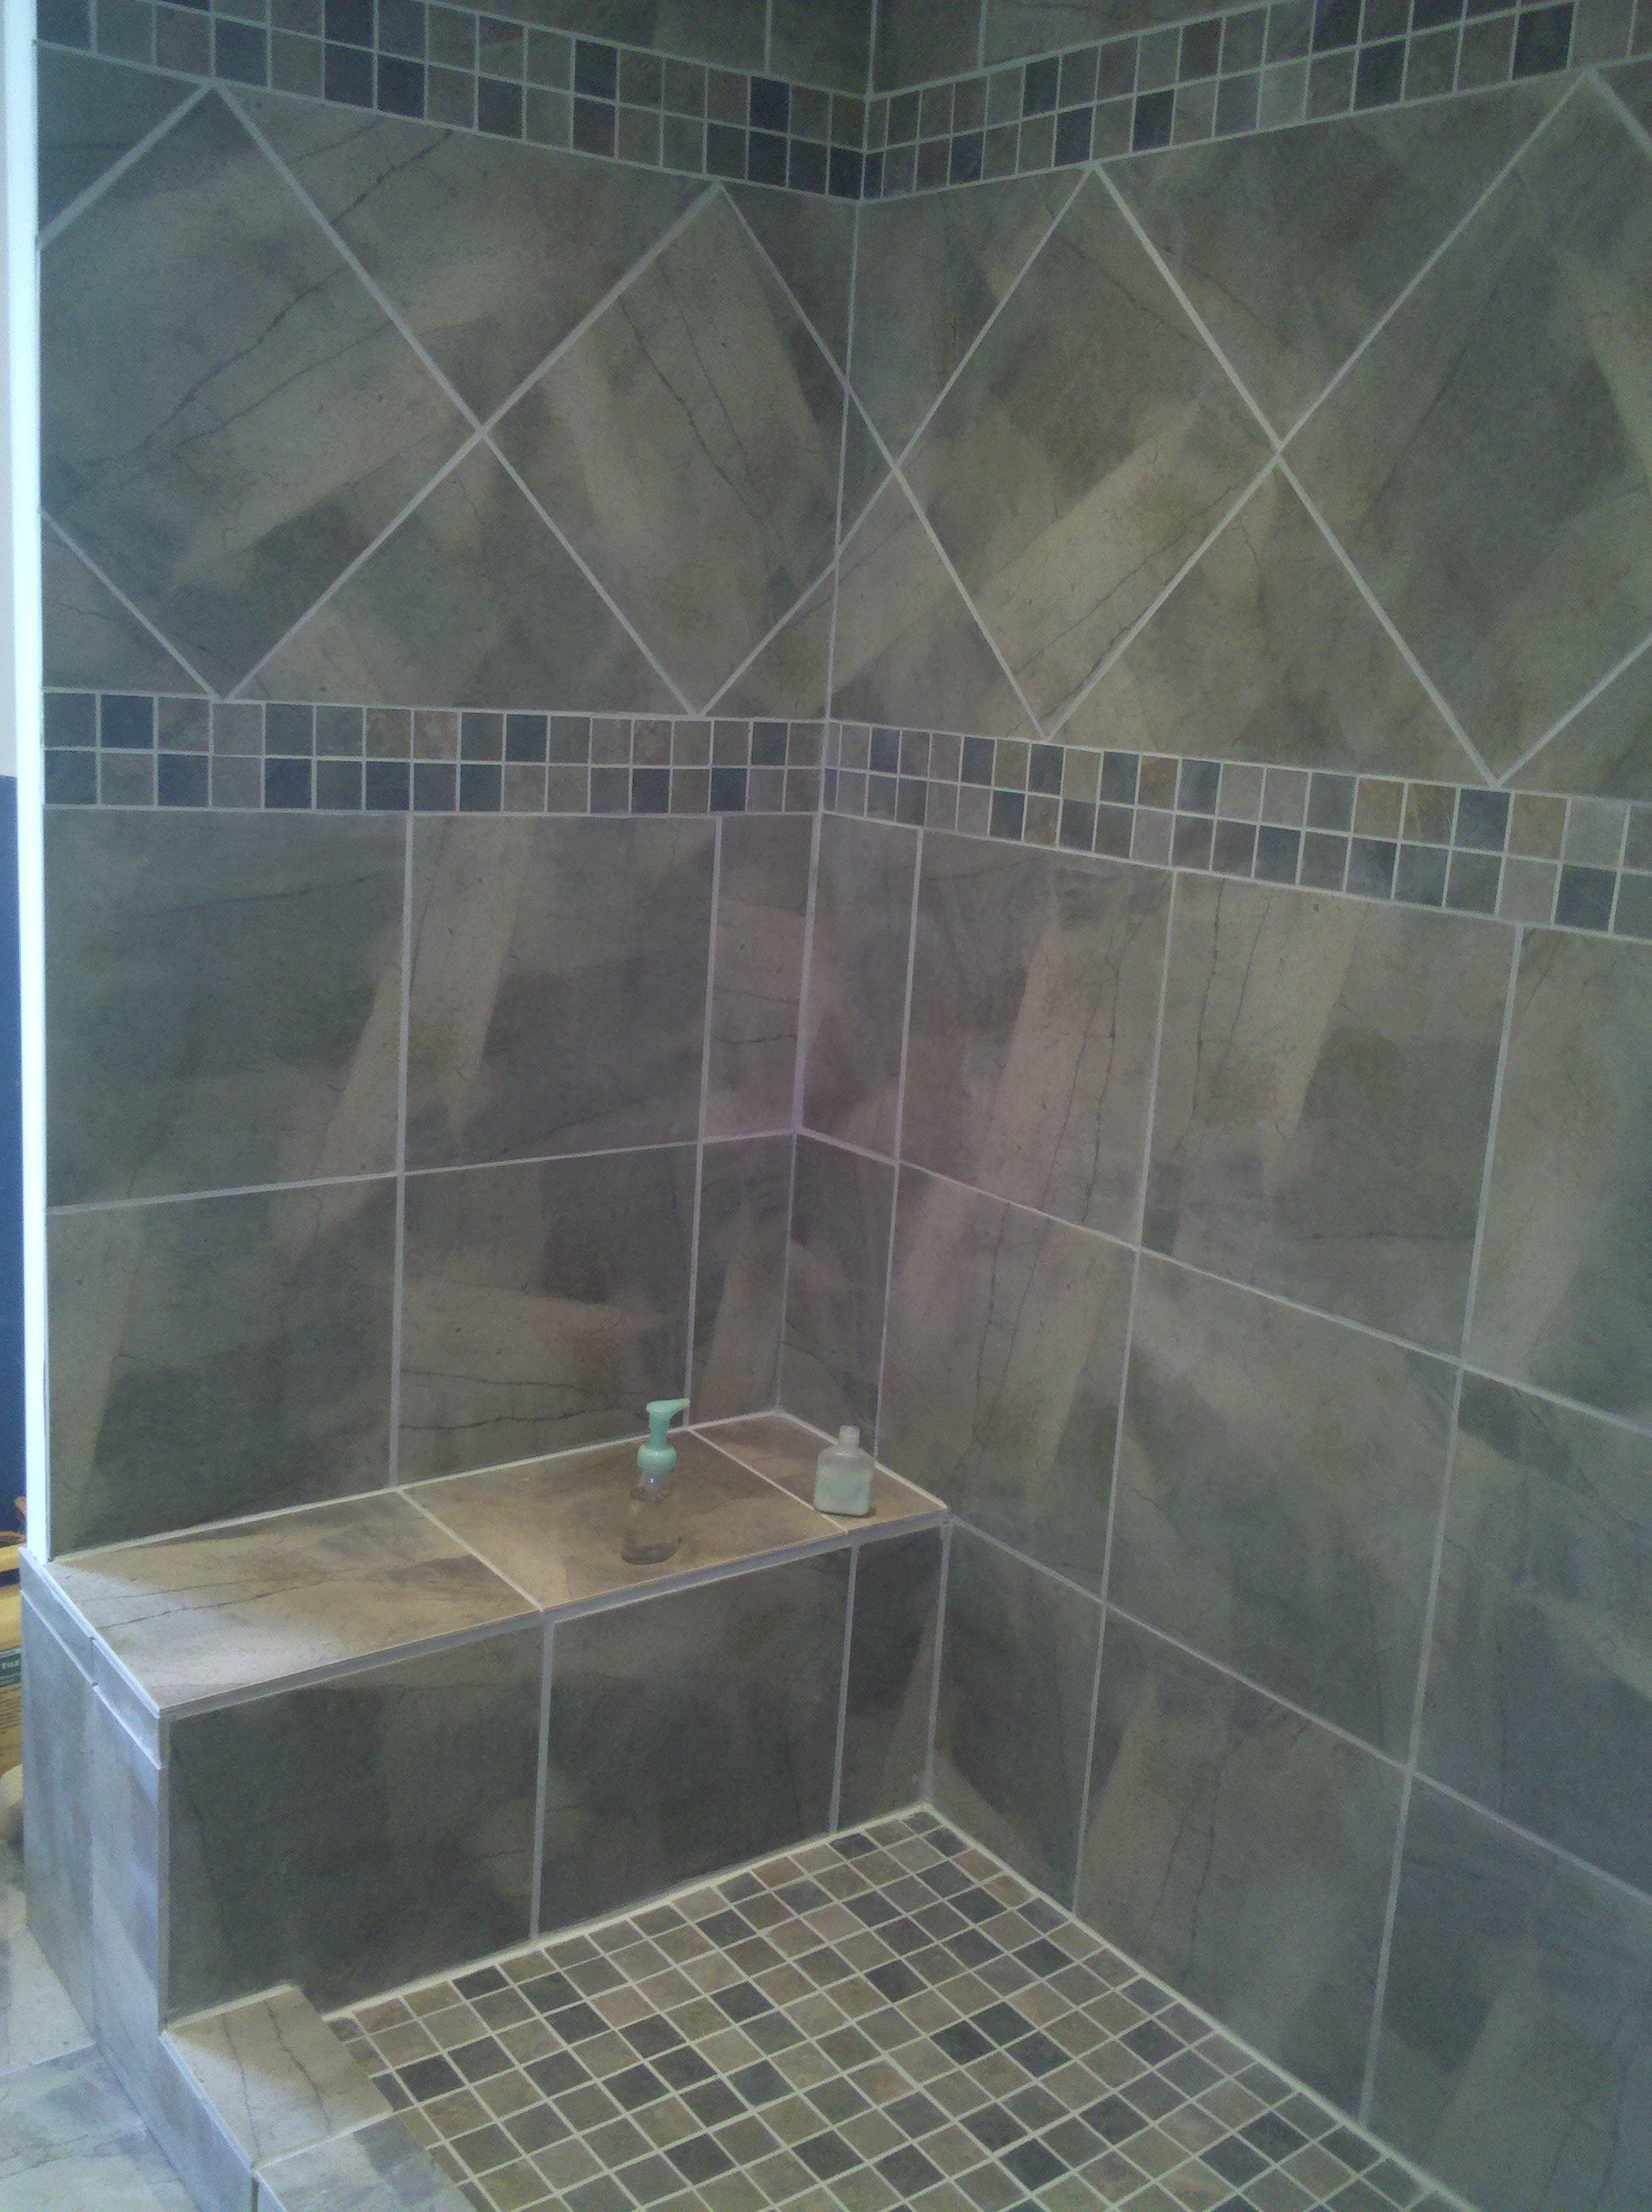 Sophisticated Gray Diagonal Tiled Shower Patern With Mosaic